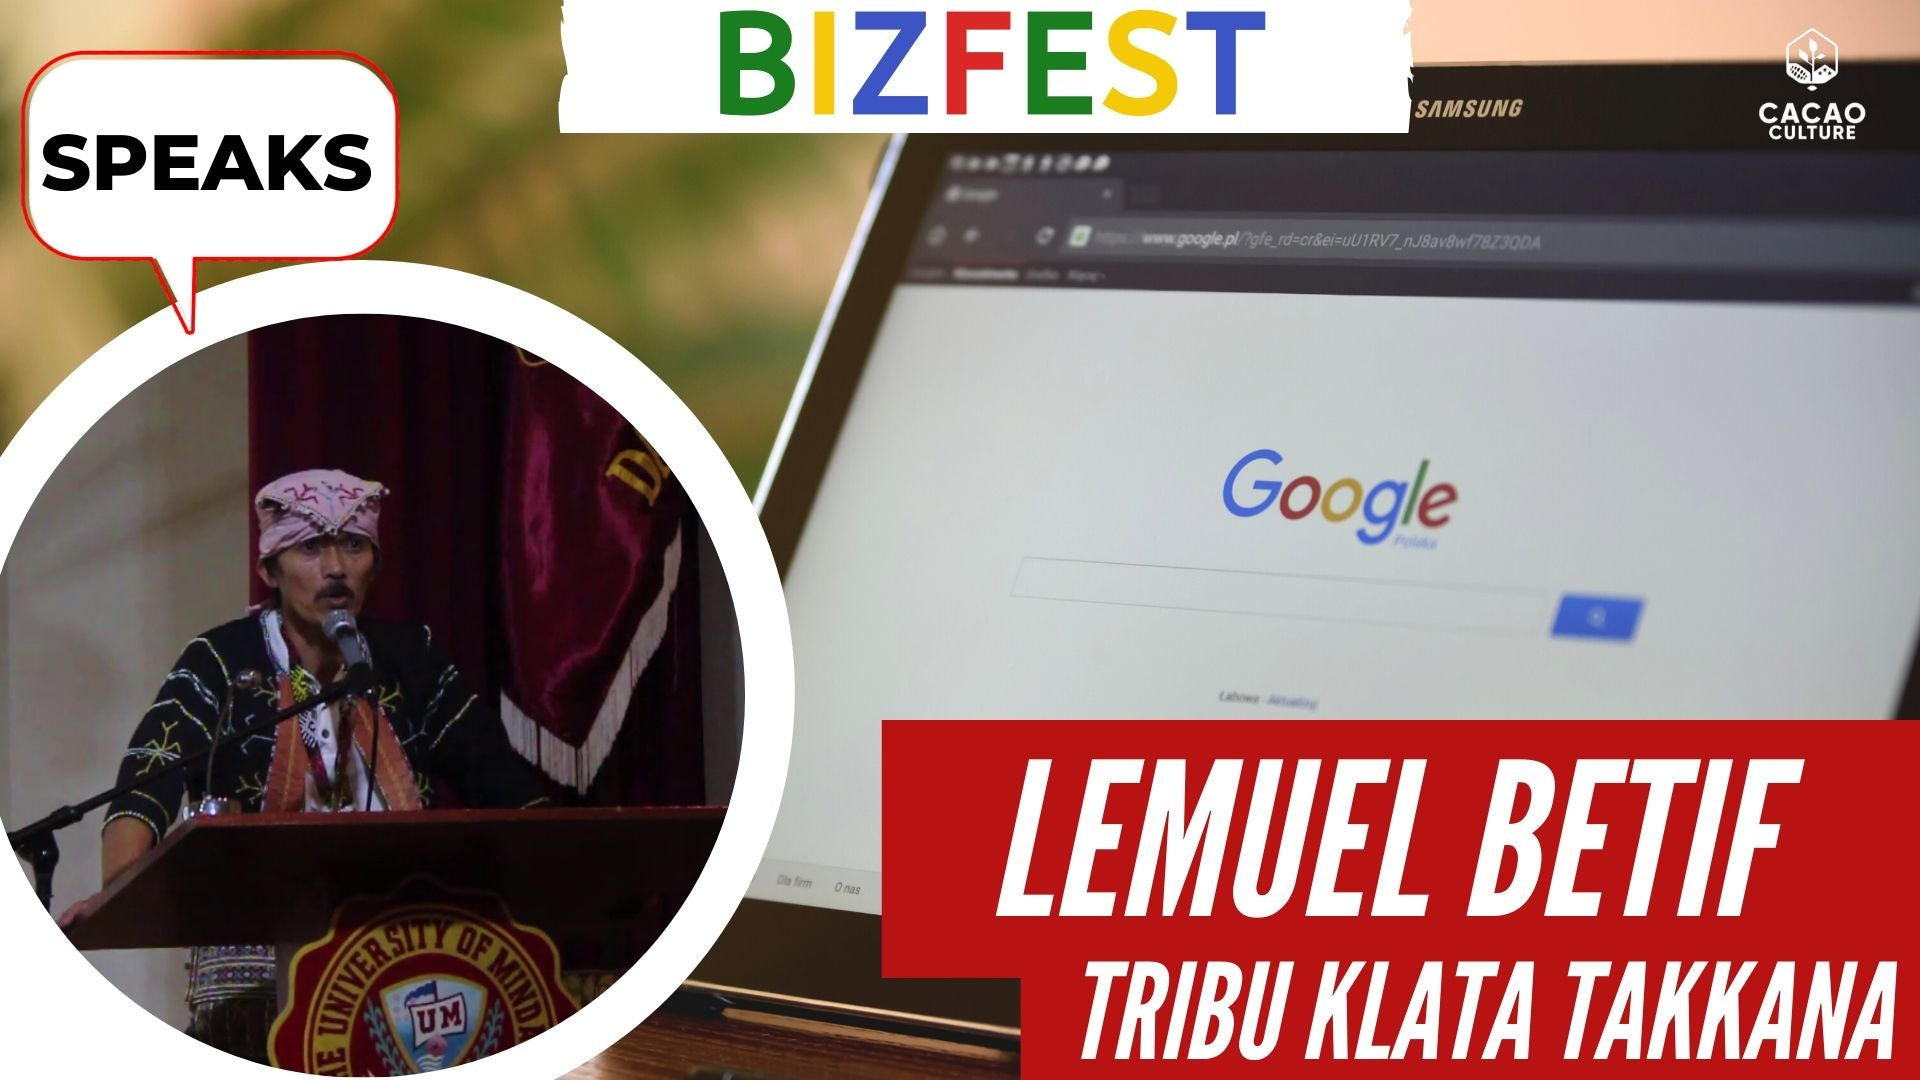 Lemuel Betif of Tribu Klata Speaks at Google Bizfest